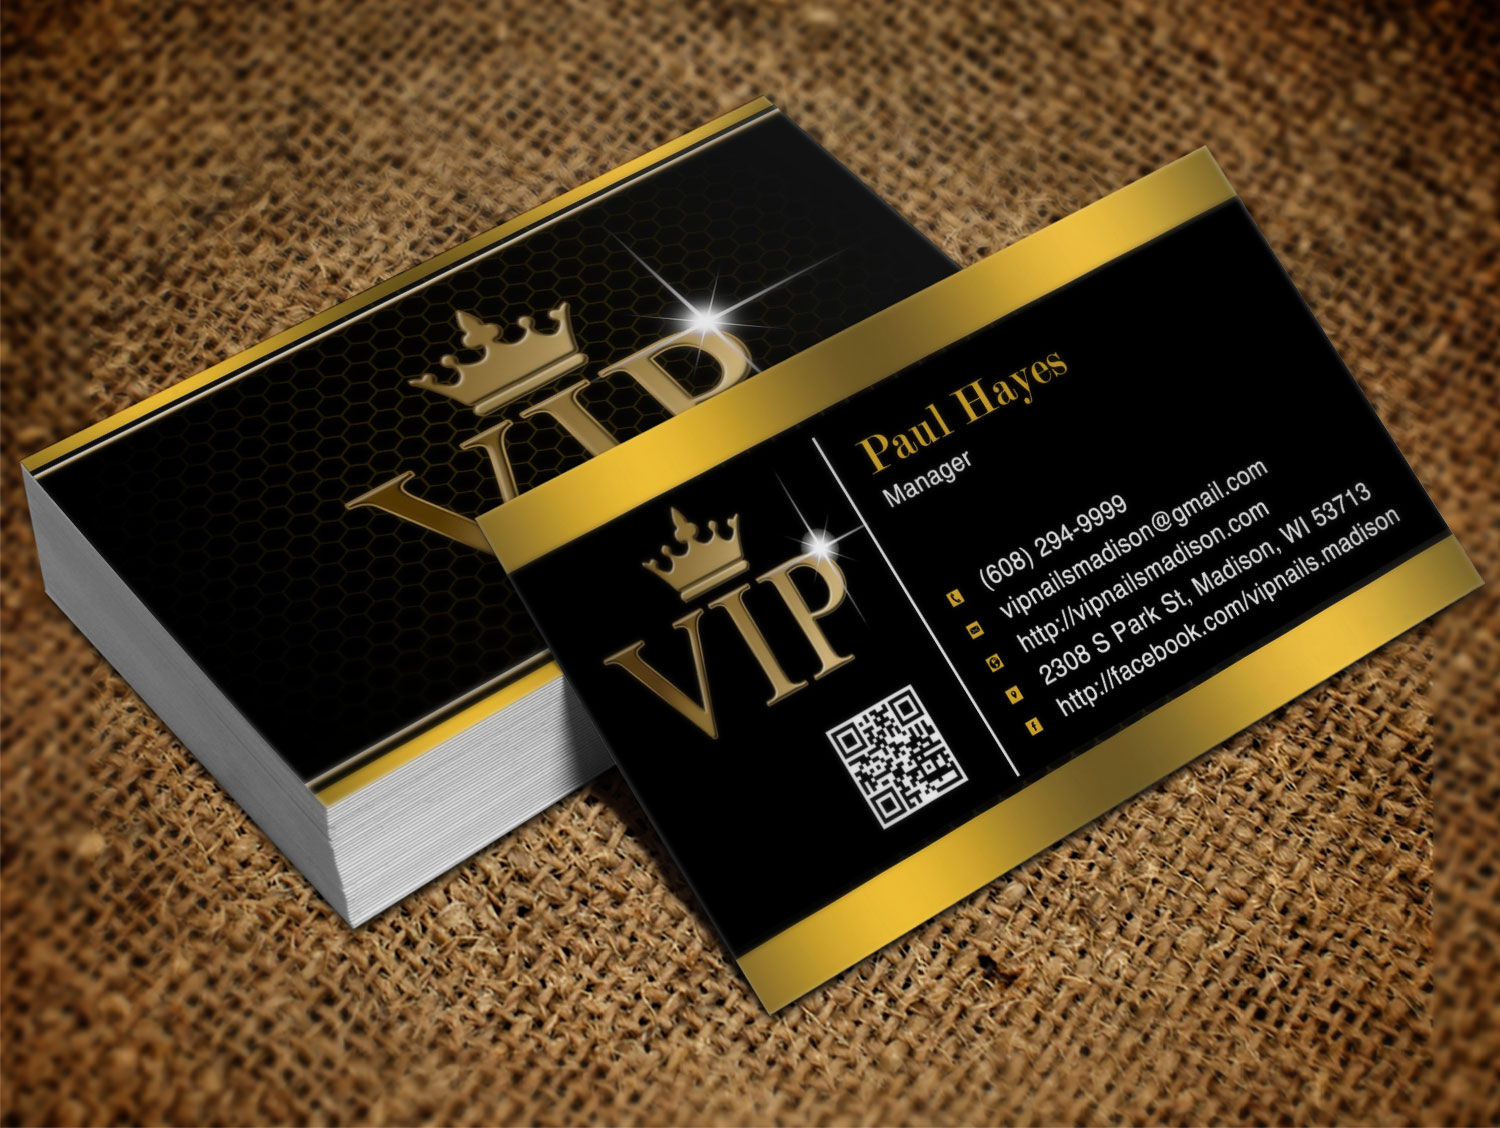 Elegant playful business business card design for vip nails spa business card design by creation lanka for vip nails spa design 8502967 reheart Choice Image